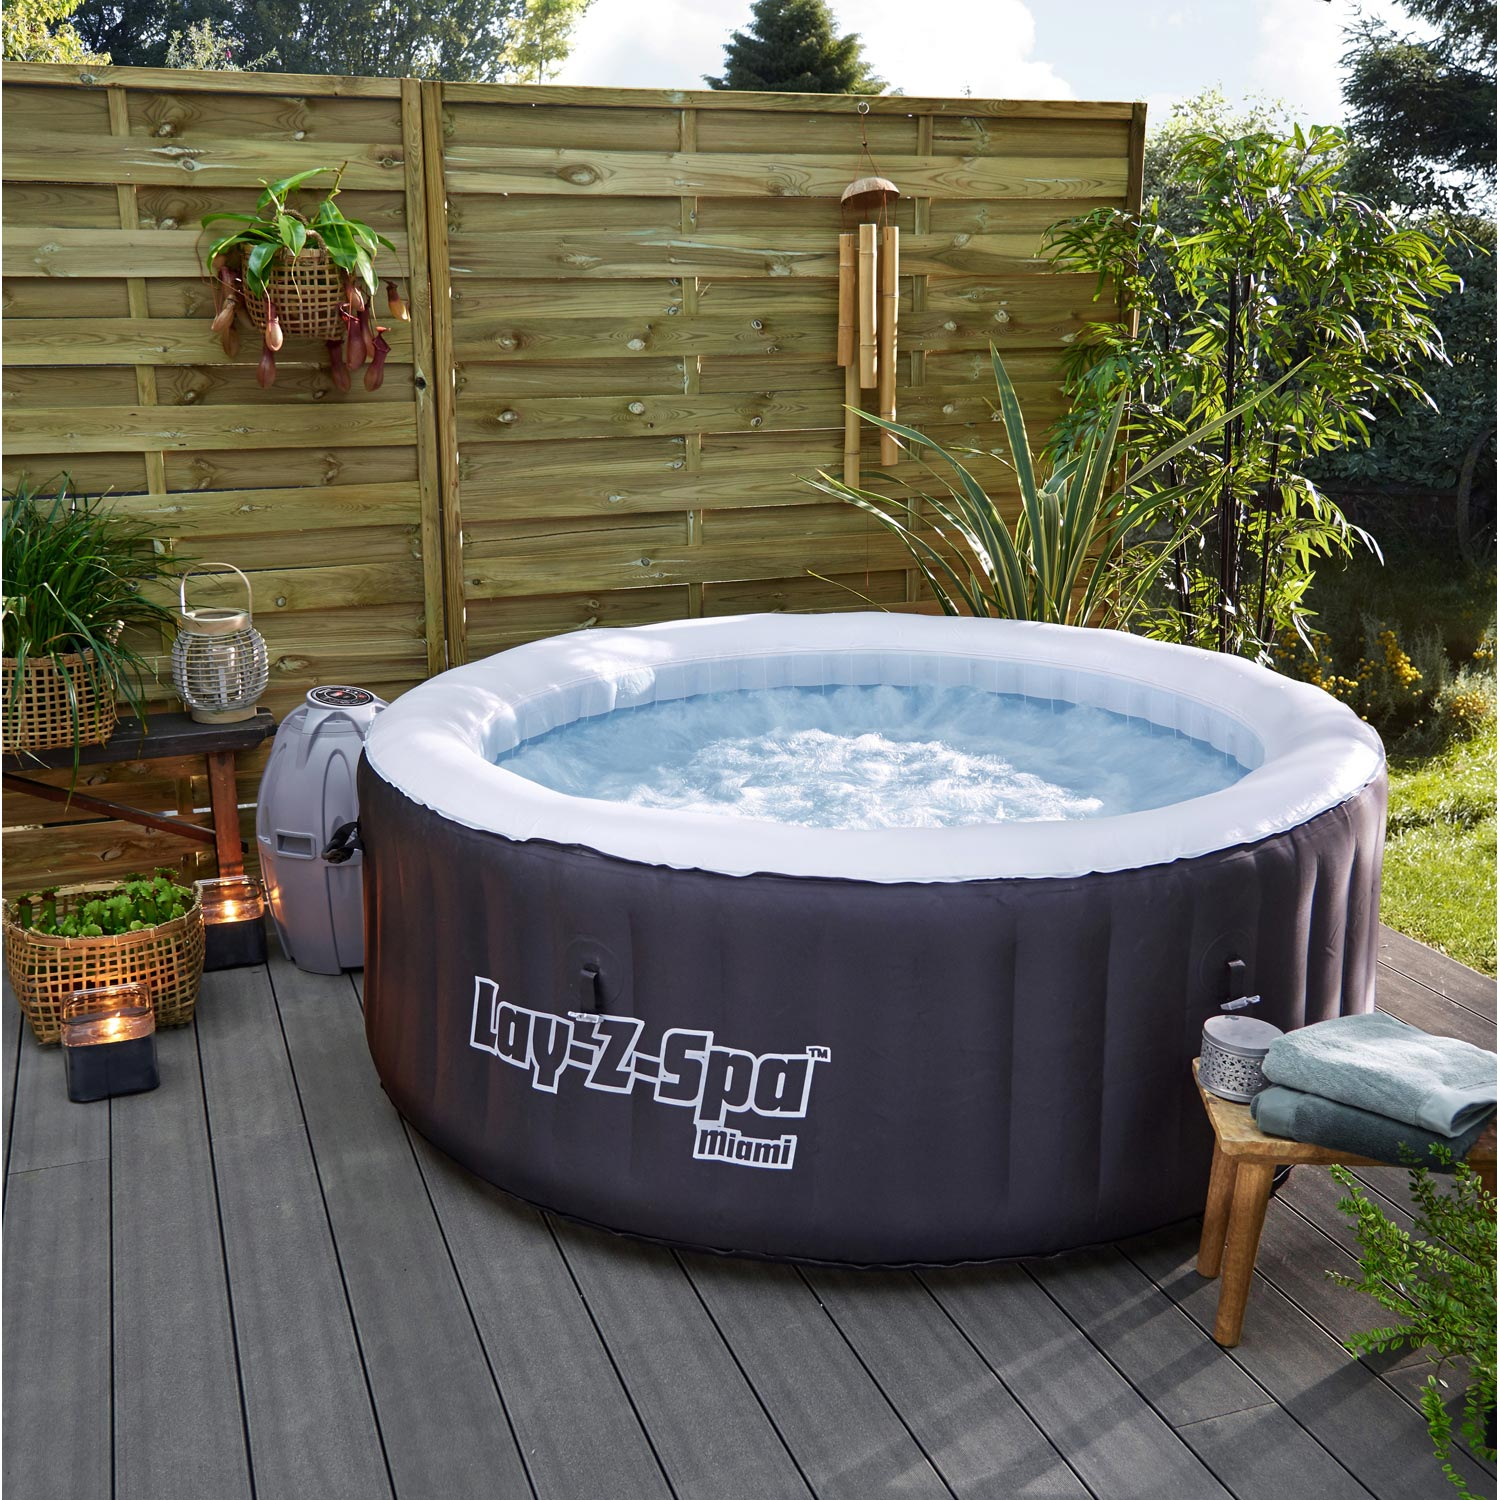 Spa gonflable bestway miami rond 4 places assises leroy - Jacuzzi exterieur gonflable ...